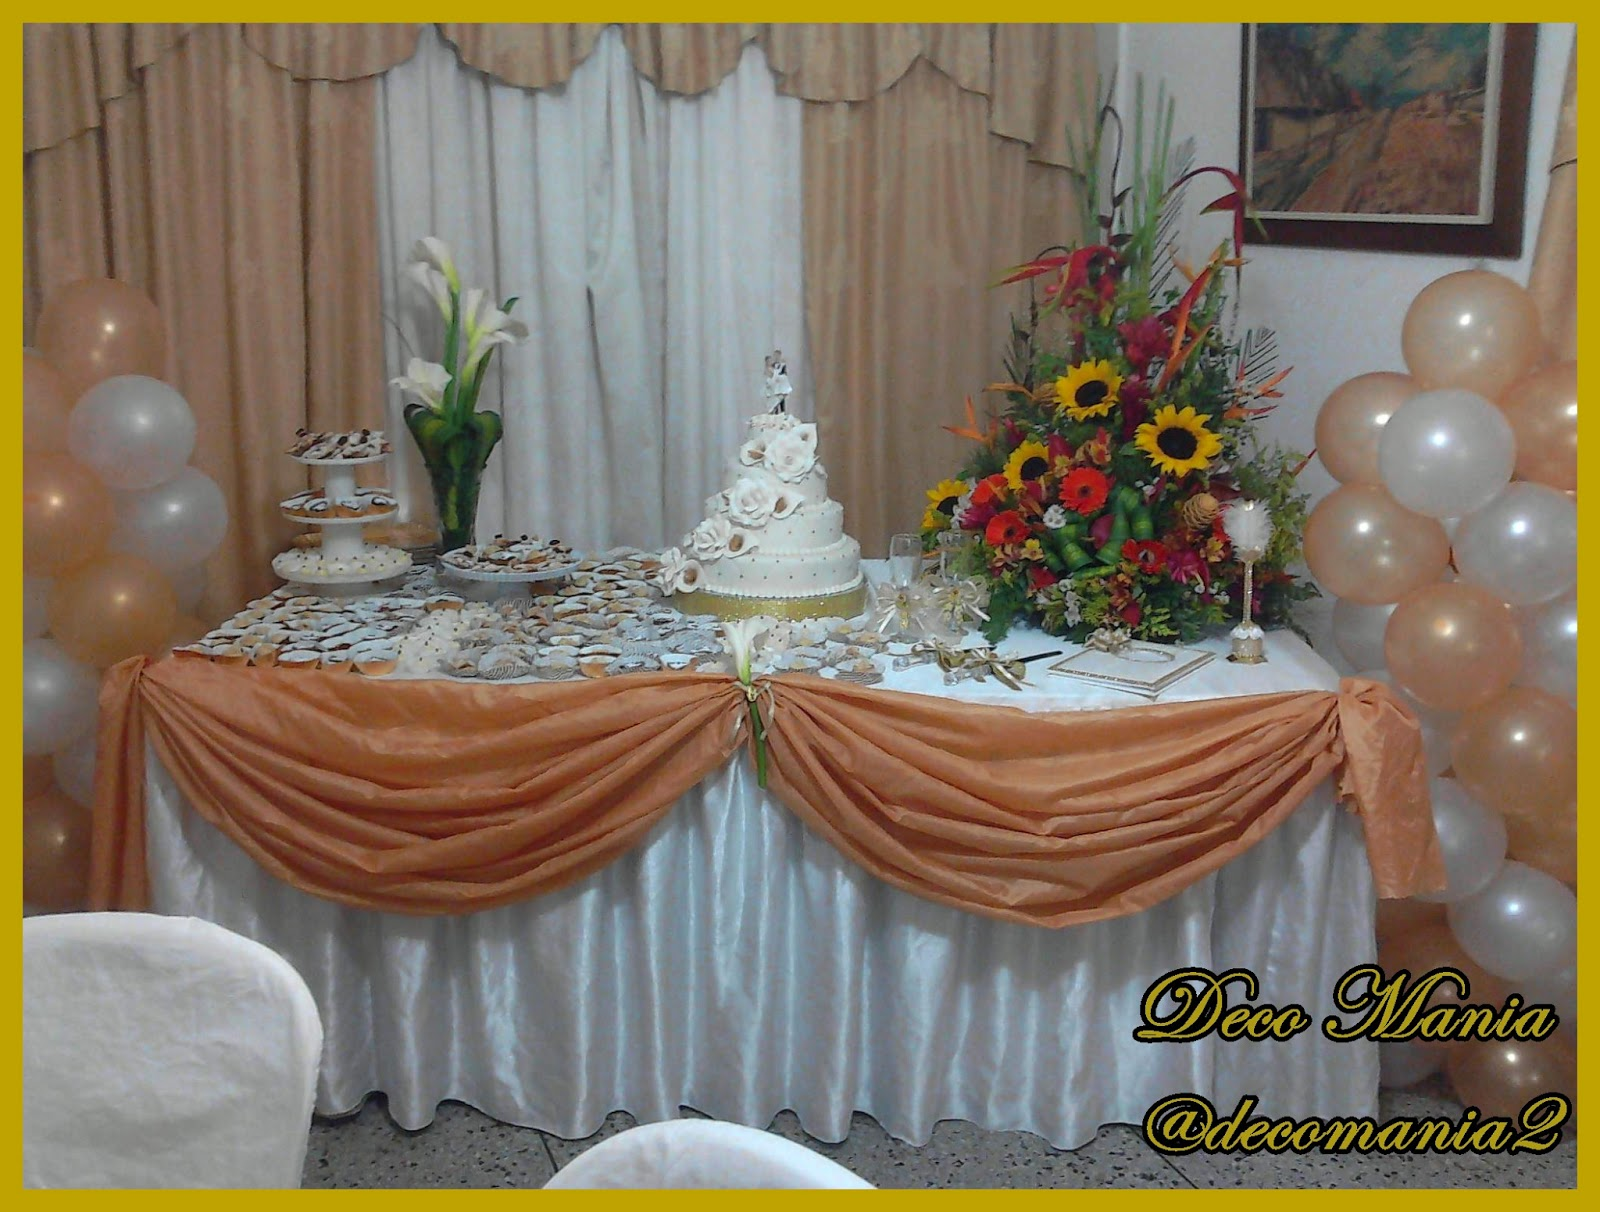 Fiestas deco mania boda civil decoracion - Adornos boda civil ...